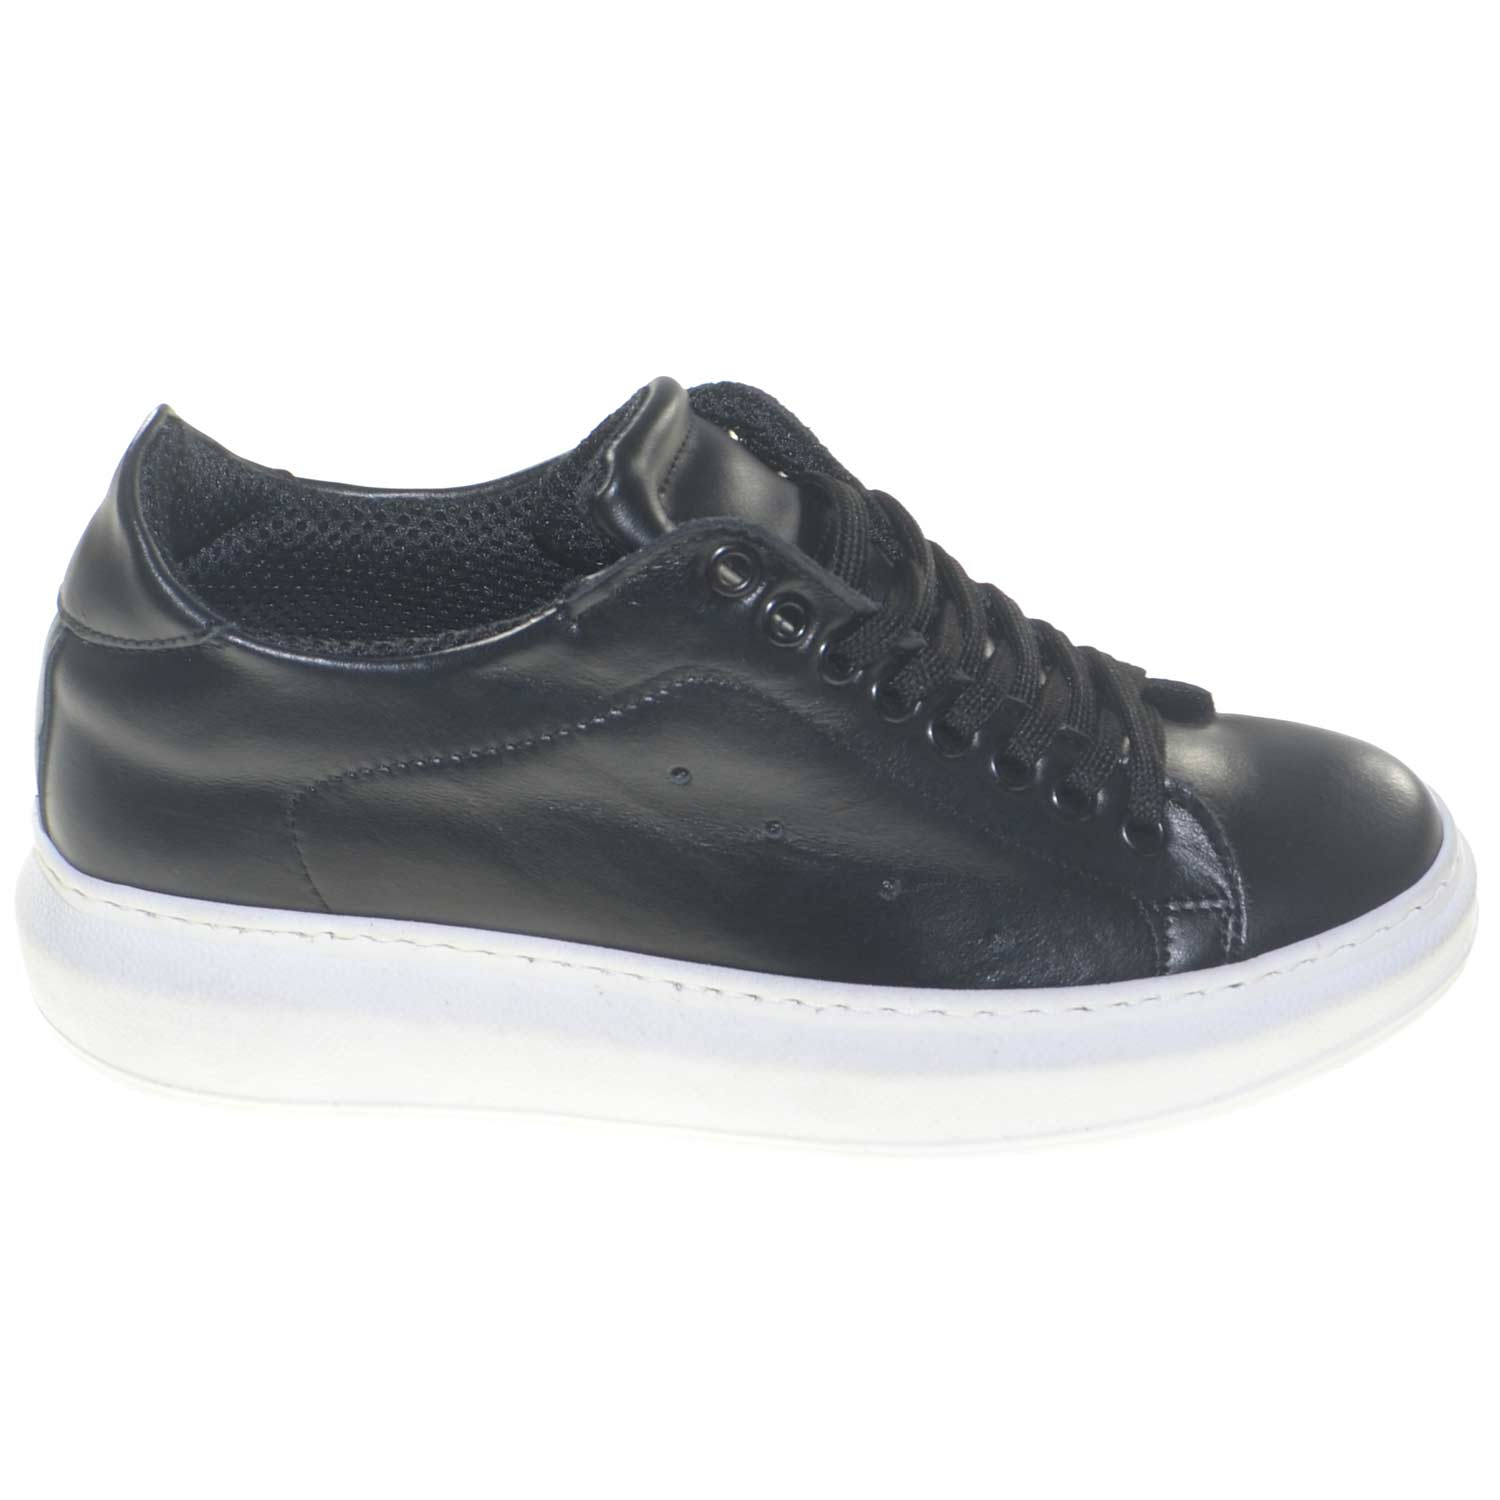 Sneakers bassa donna in vera pelle fondo alto bianco queen comfort linea basic trendy.